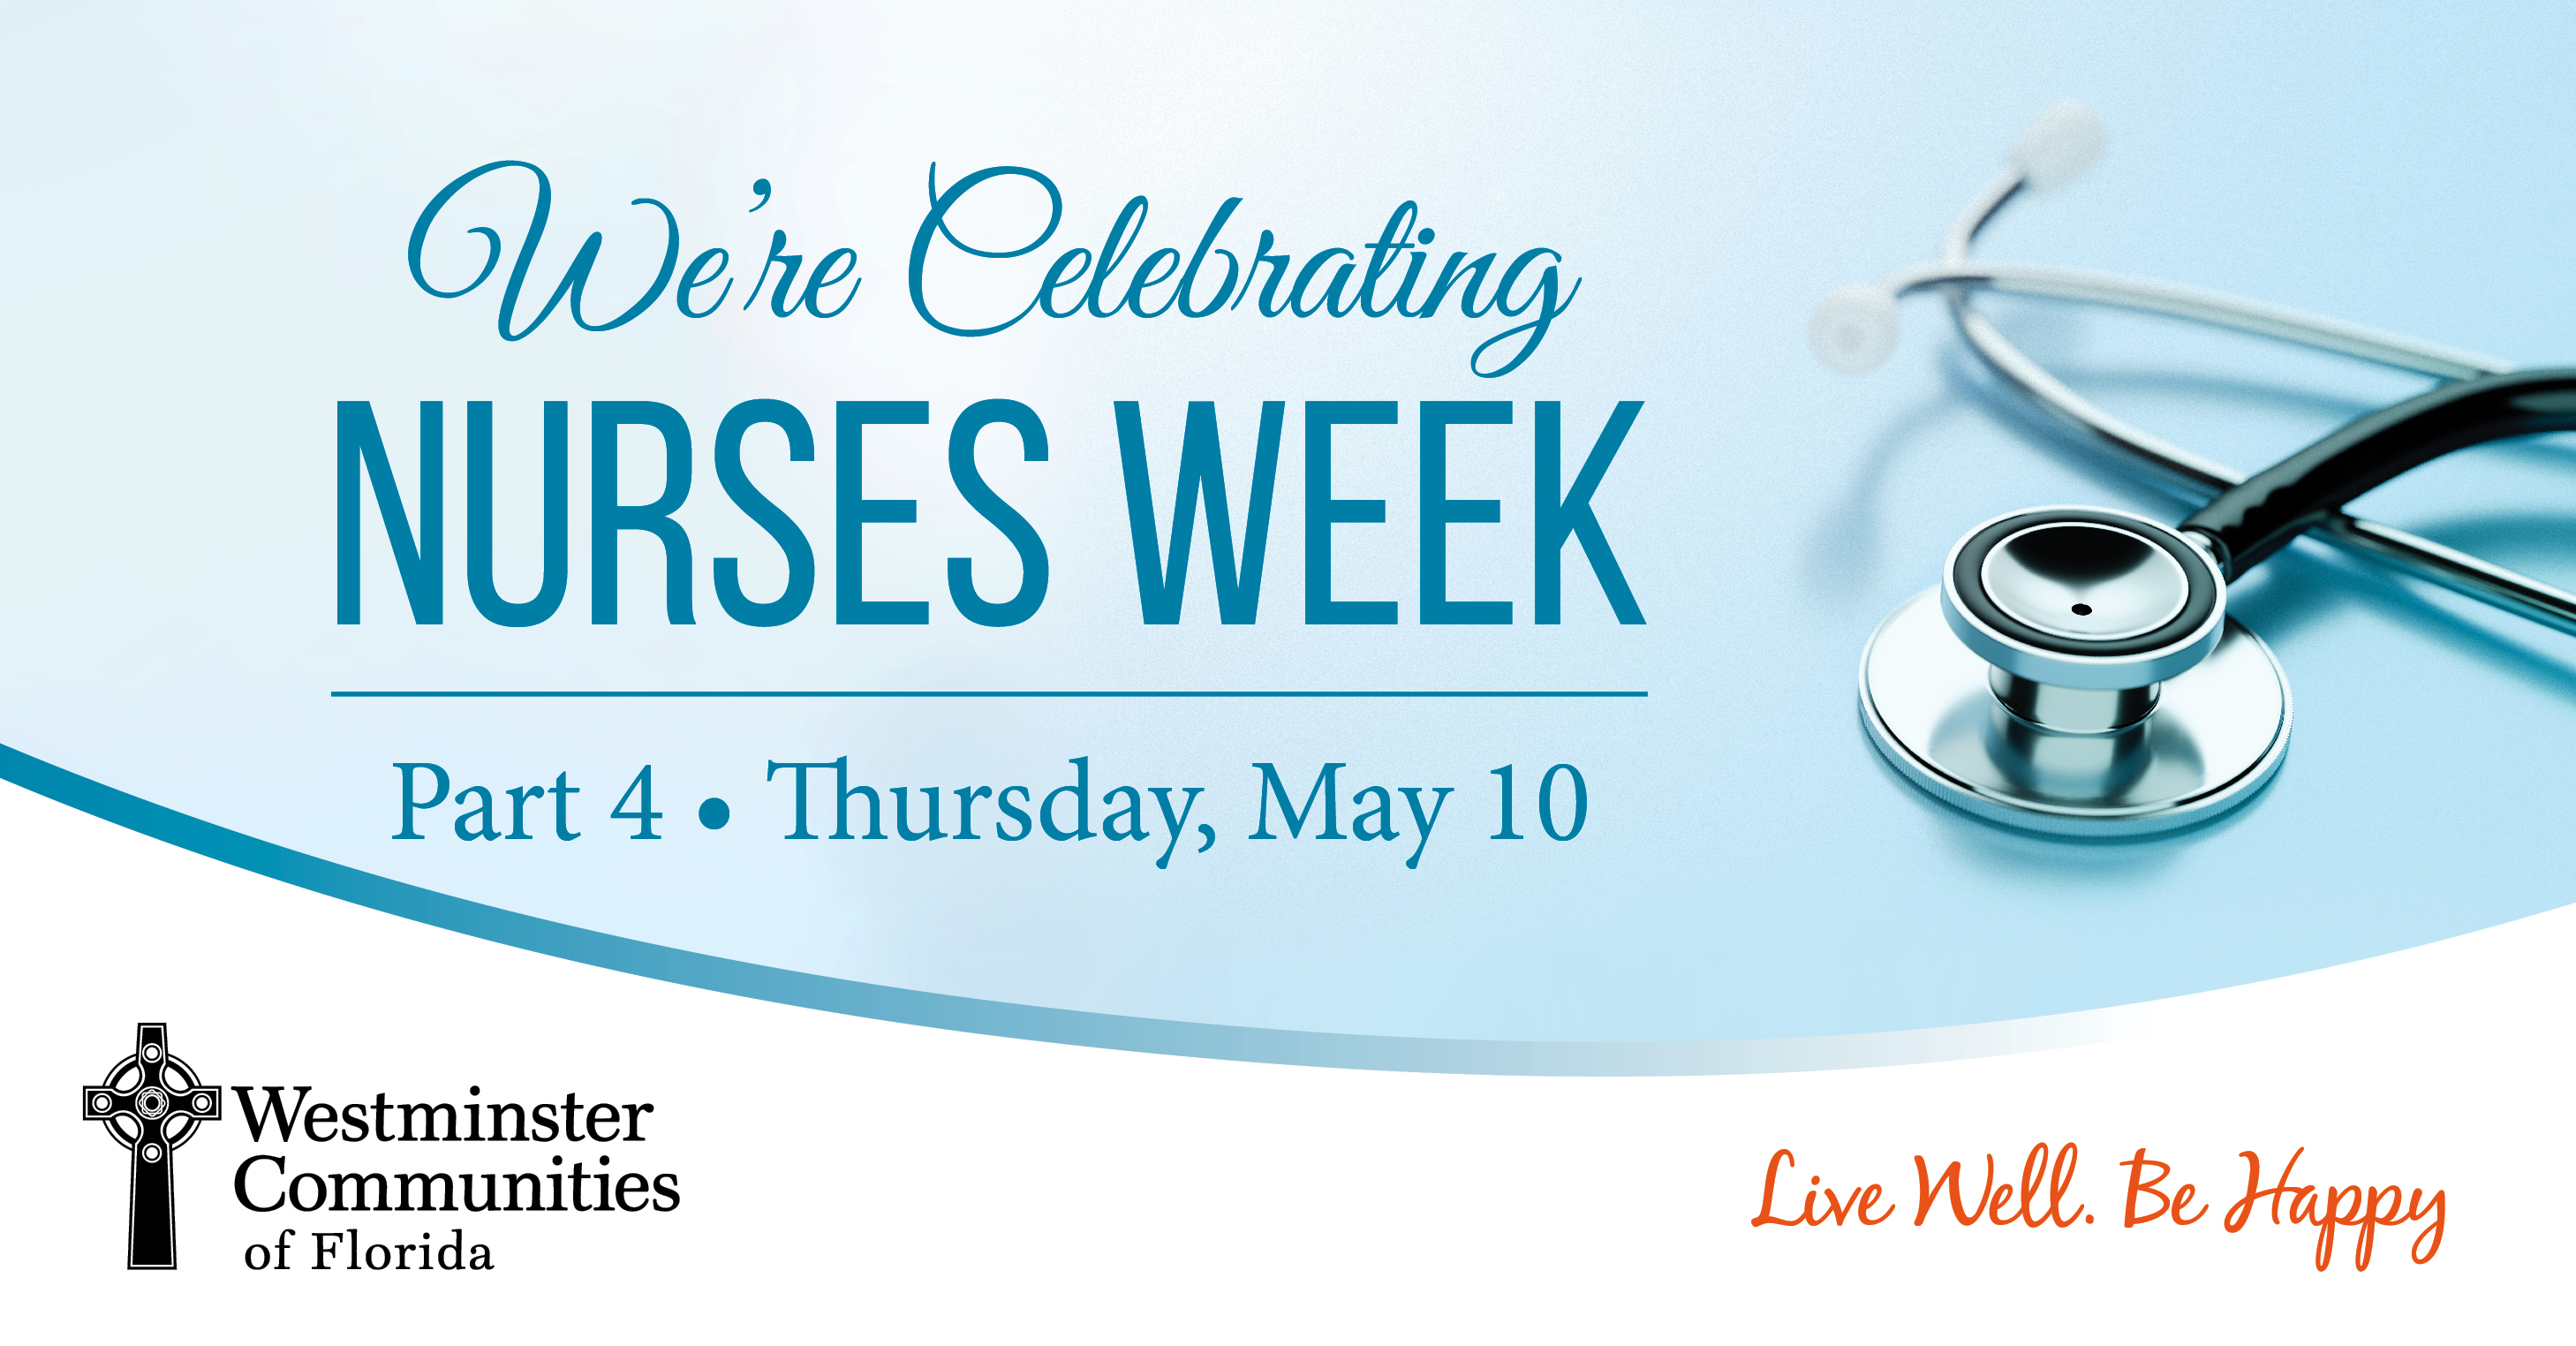 b2e68def7a3 If you see a nurse, say thank you! That's the theme of National Nurses  Week, a time when the whole country expresses our gratitude to our  hard-working ...